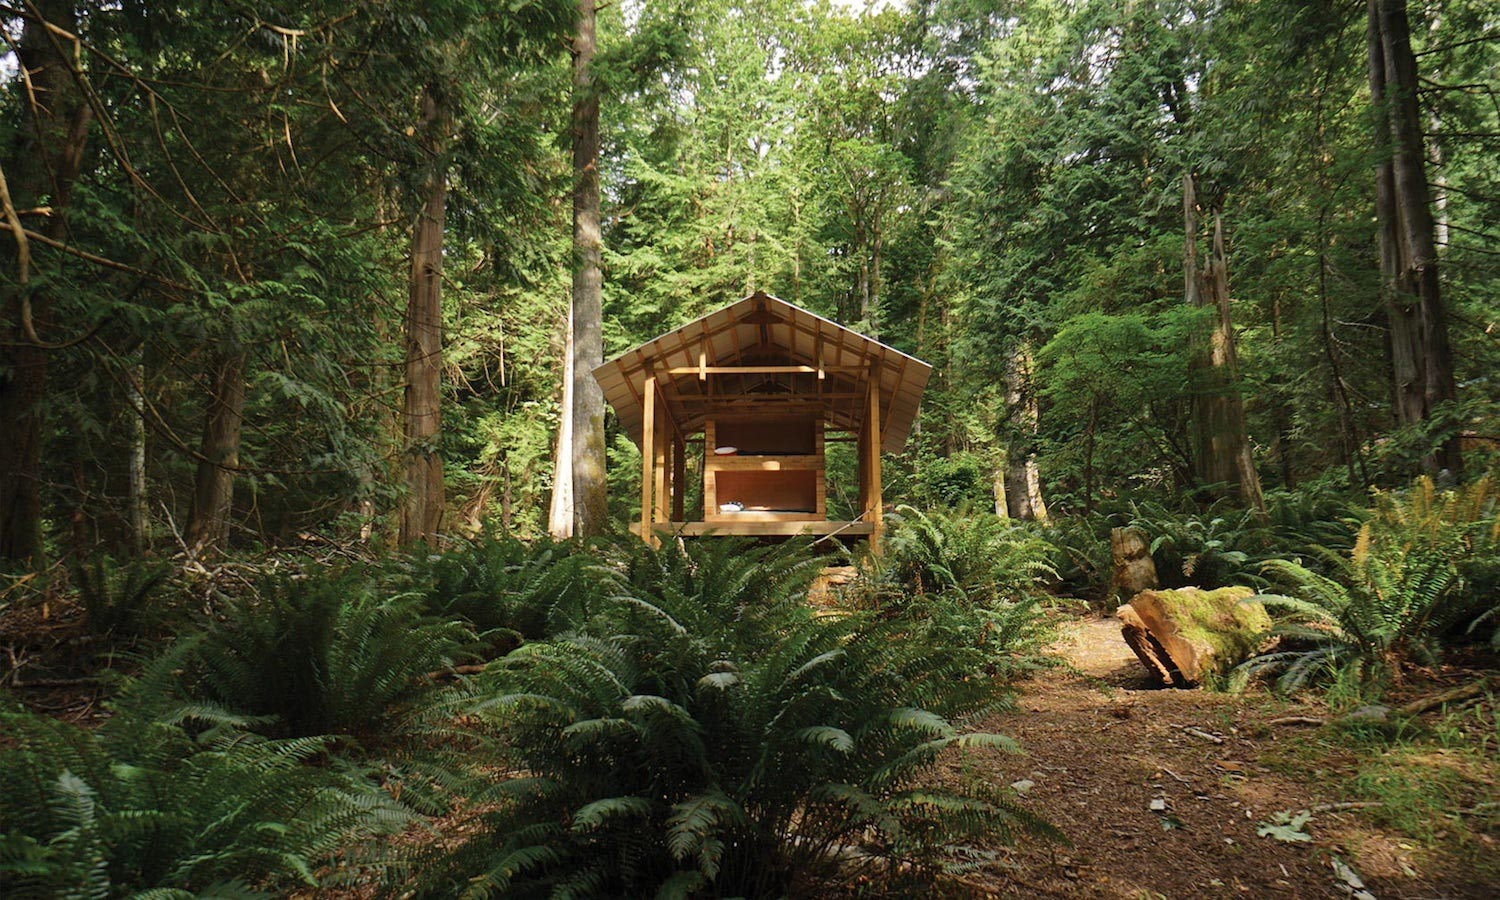 Offthegrid cabin set in middle of an islands rainforest